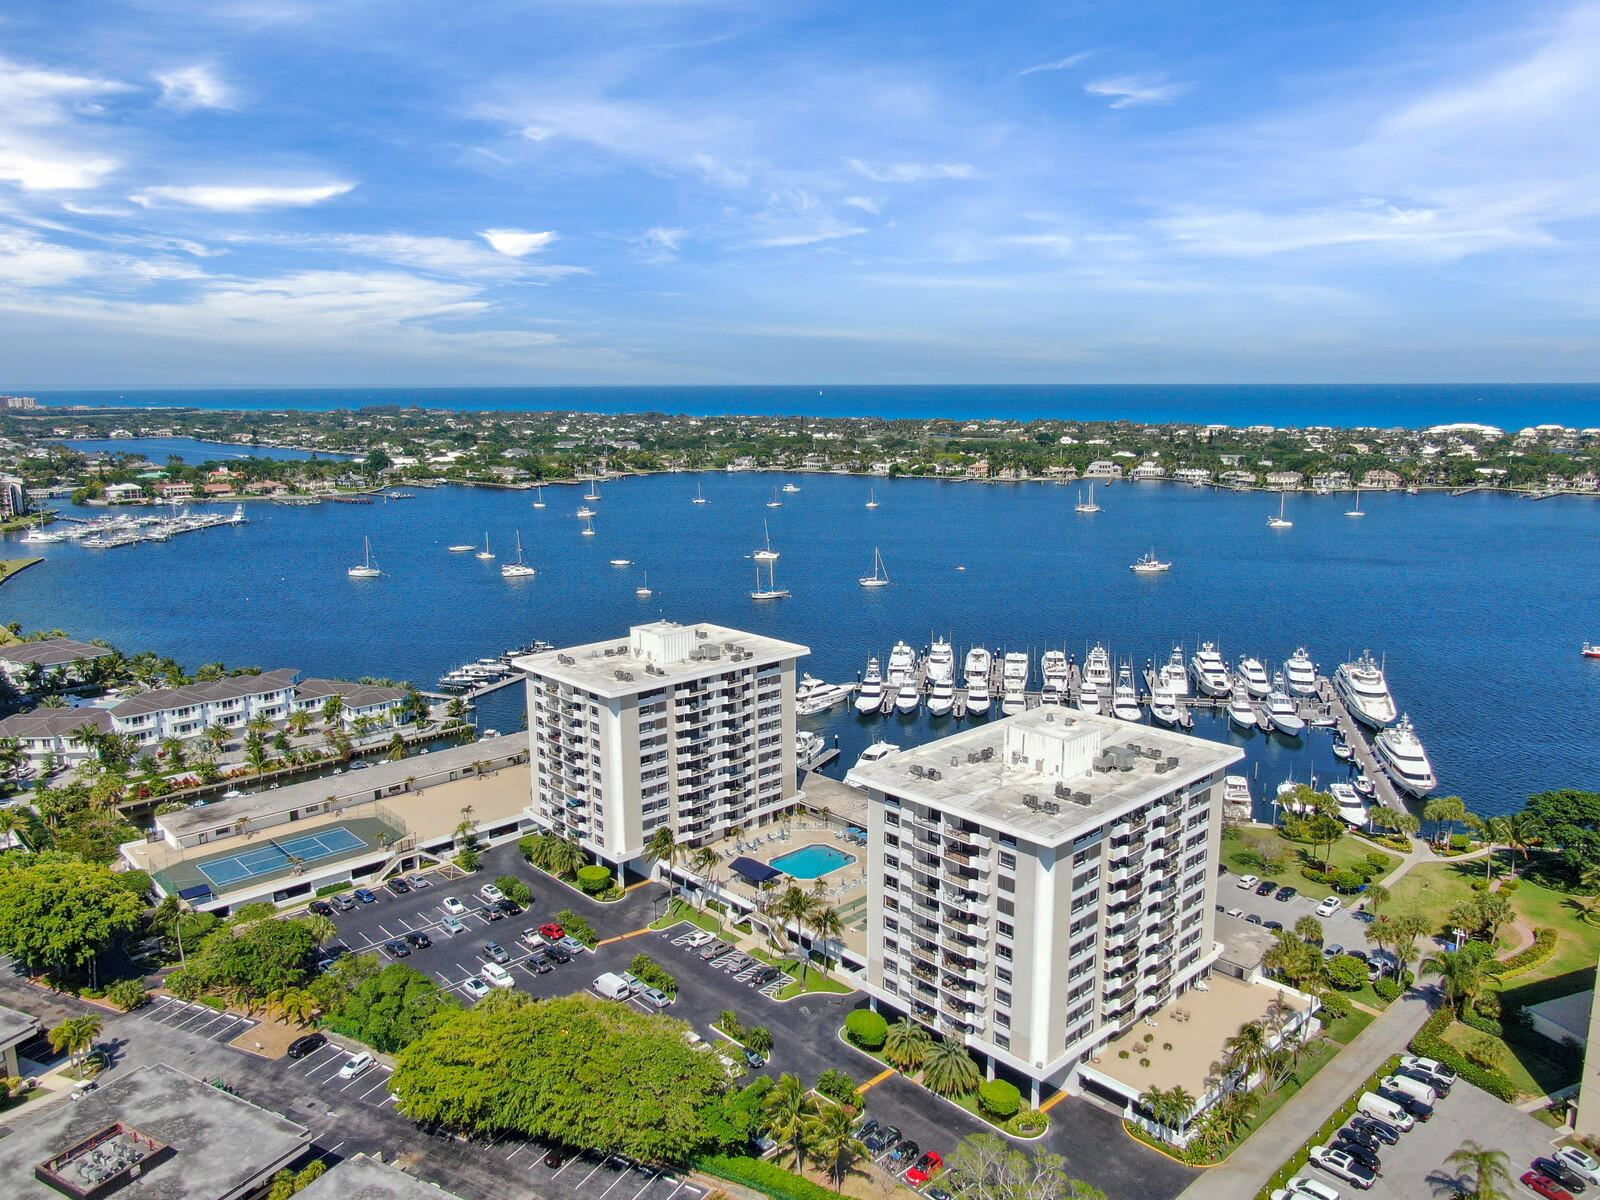 Photo of 1200 Marine Way #505, North Palm Beach, FL 33408 (MLS # RX-10716424)